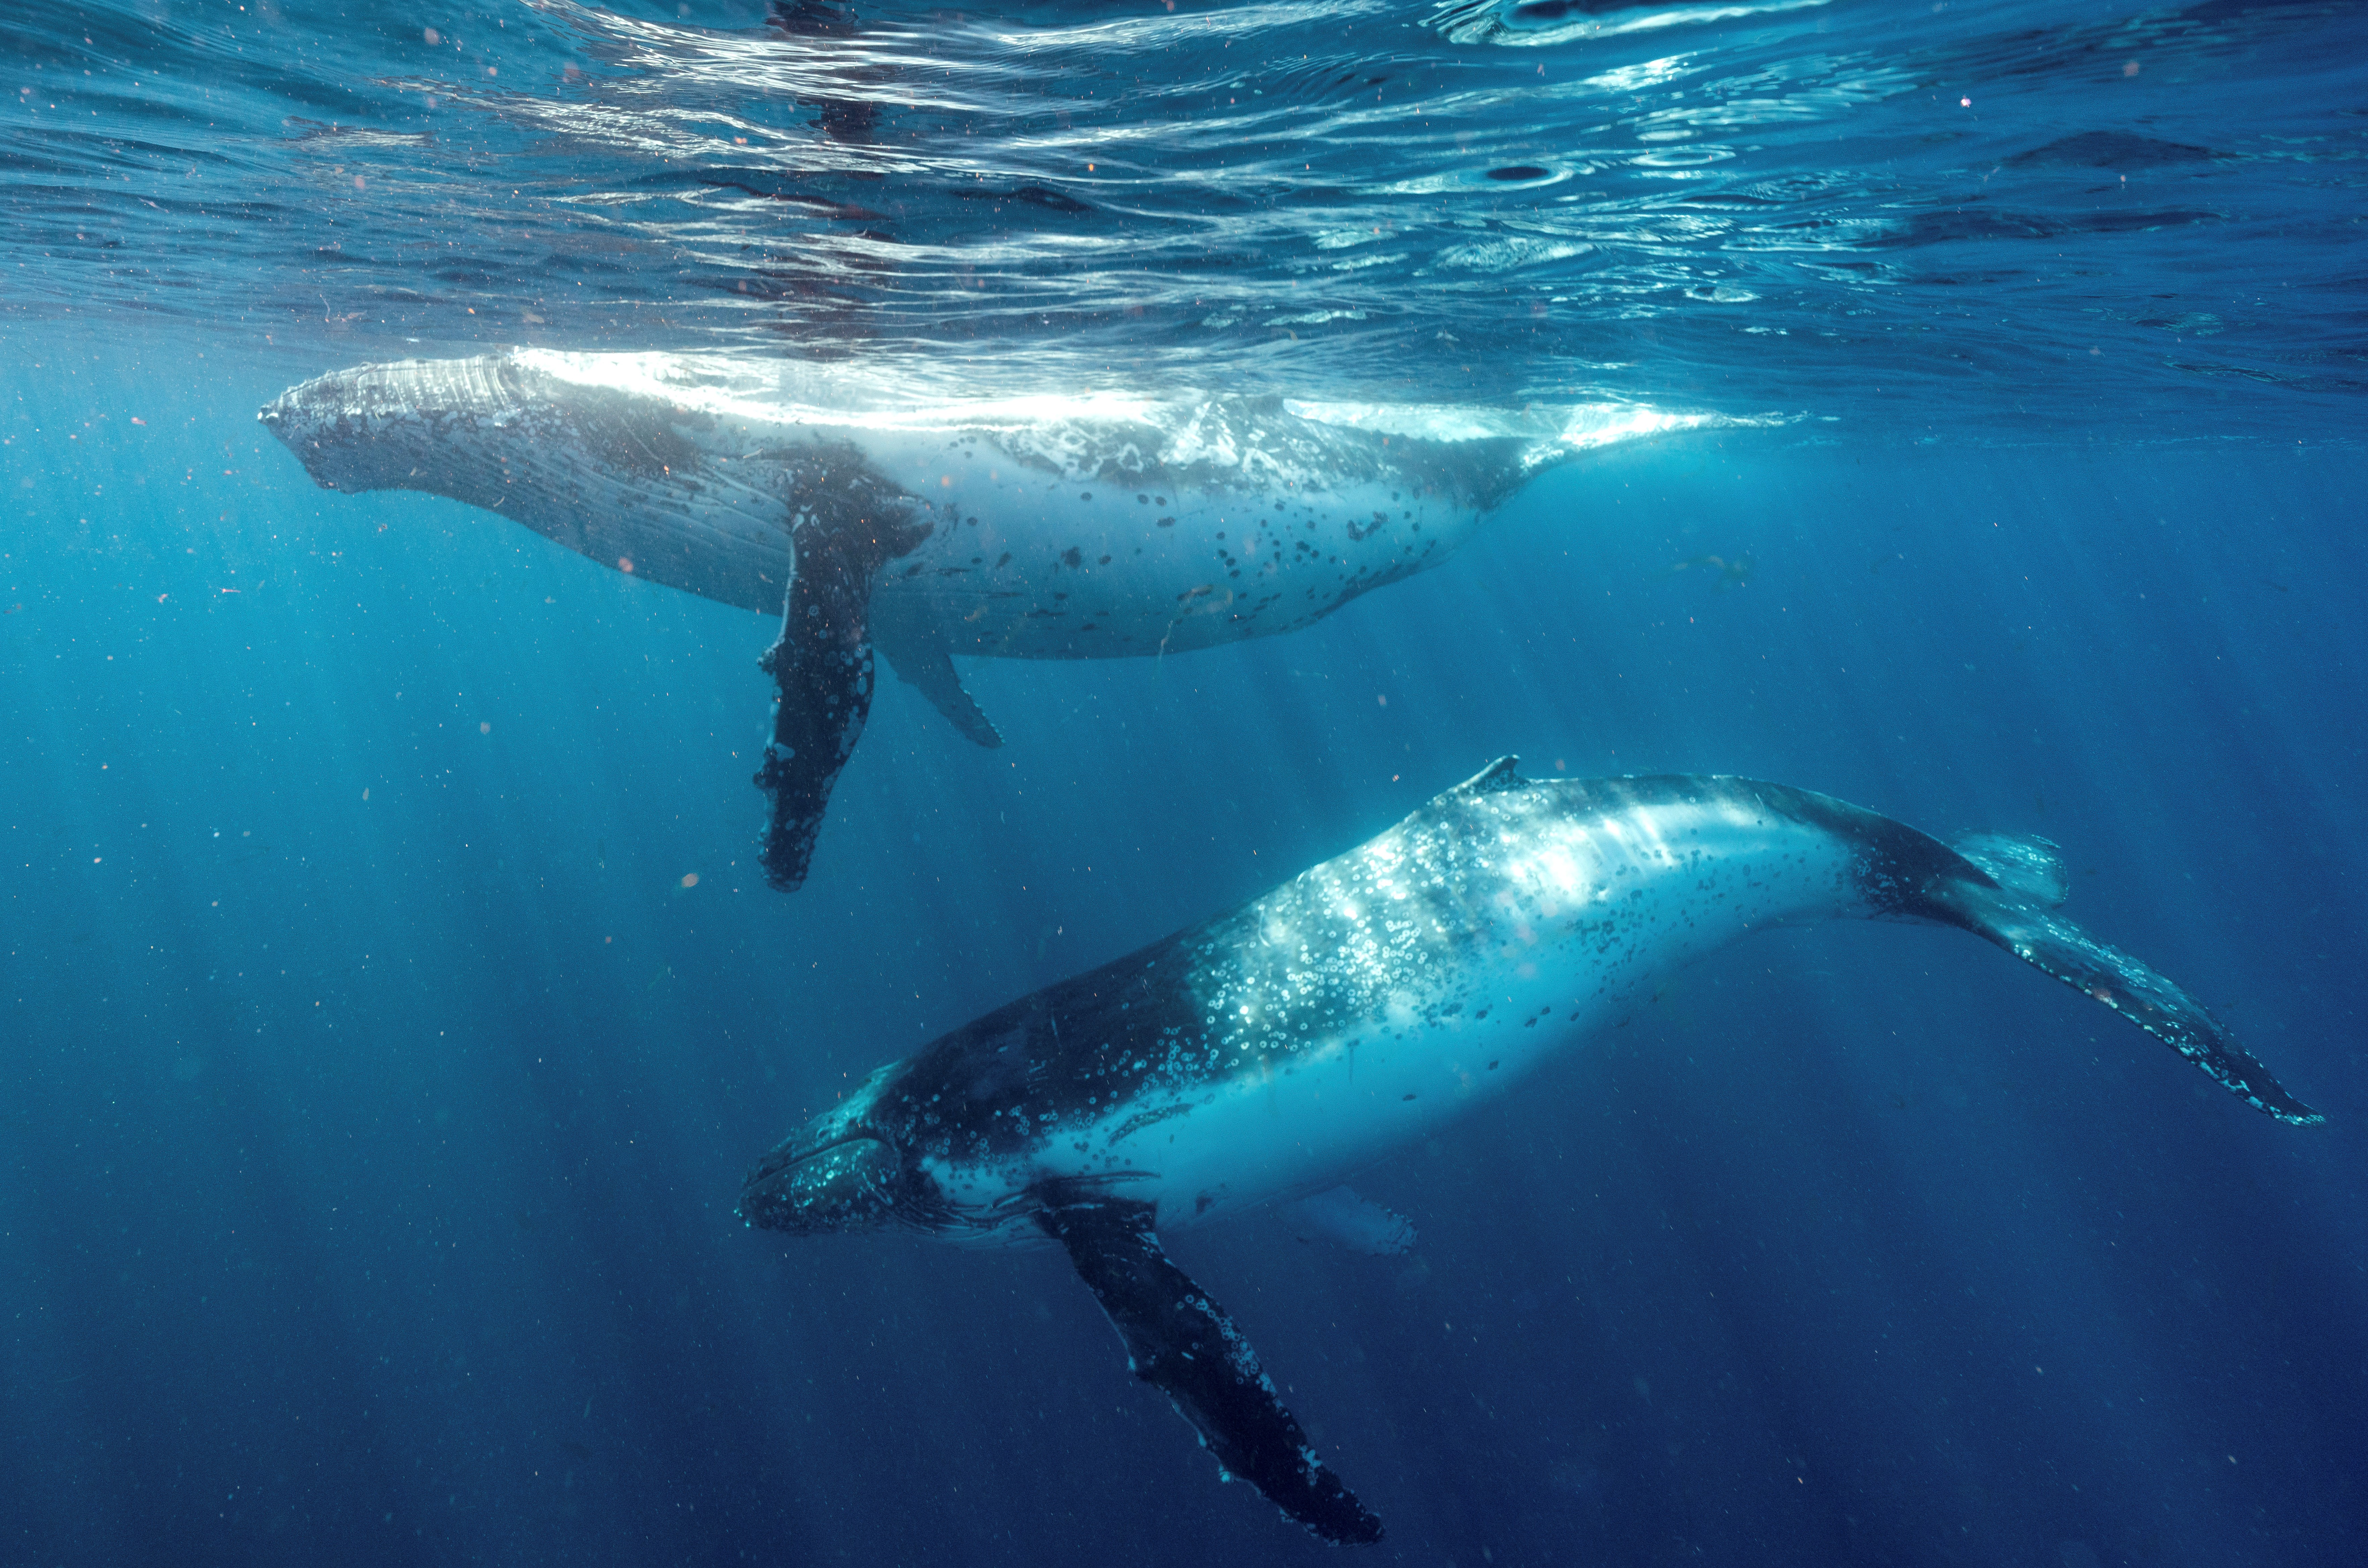 Image of two humpback whales migrating off the NSW south coast near Jervis Bay